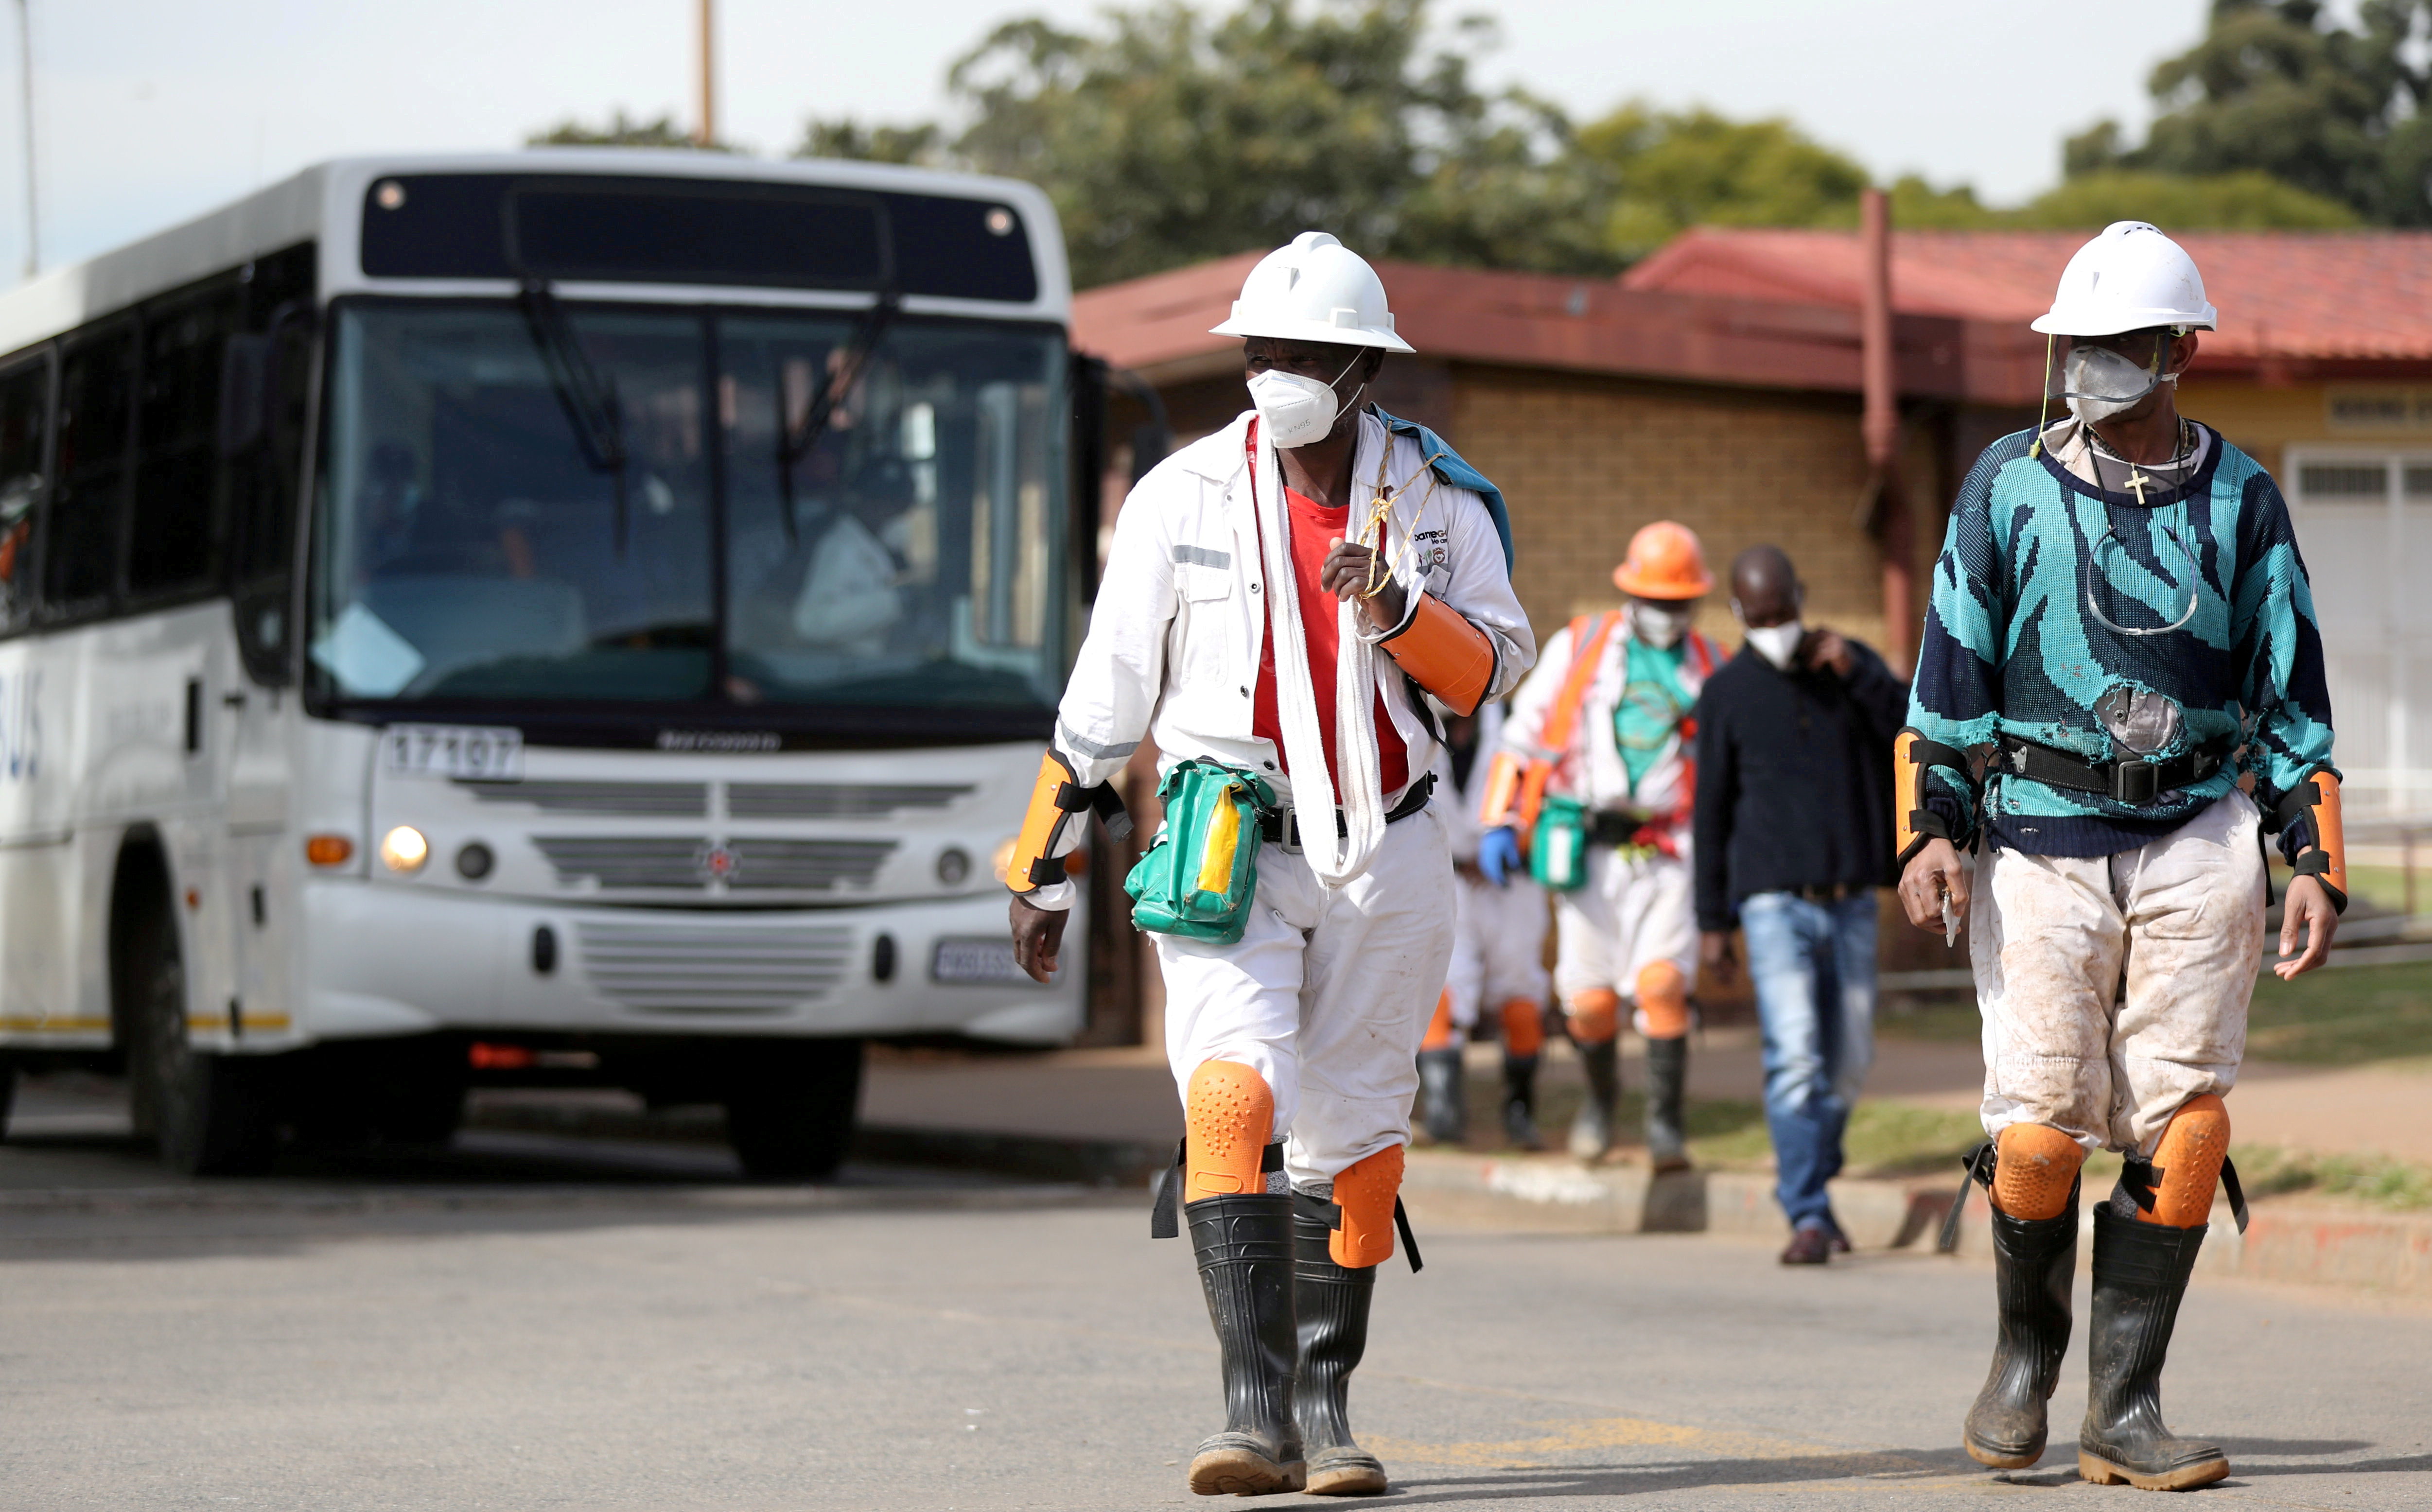 Mine workers wearing face masks arrive ahead of their shift, amid a nationwide coronavirus disease (COVID-19) lockdown, at a mine of Sibanye-Stillwater company in Carletonville, South Africa, May 19, 2020. REUTERS/Siphiwe Sibeko